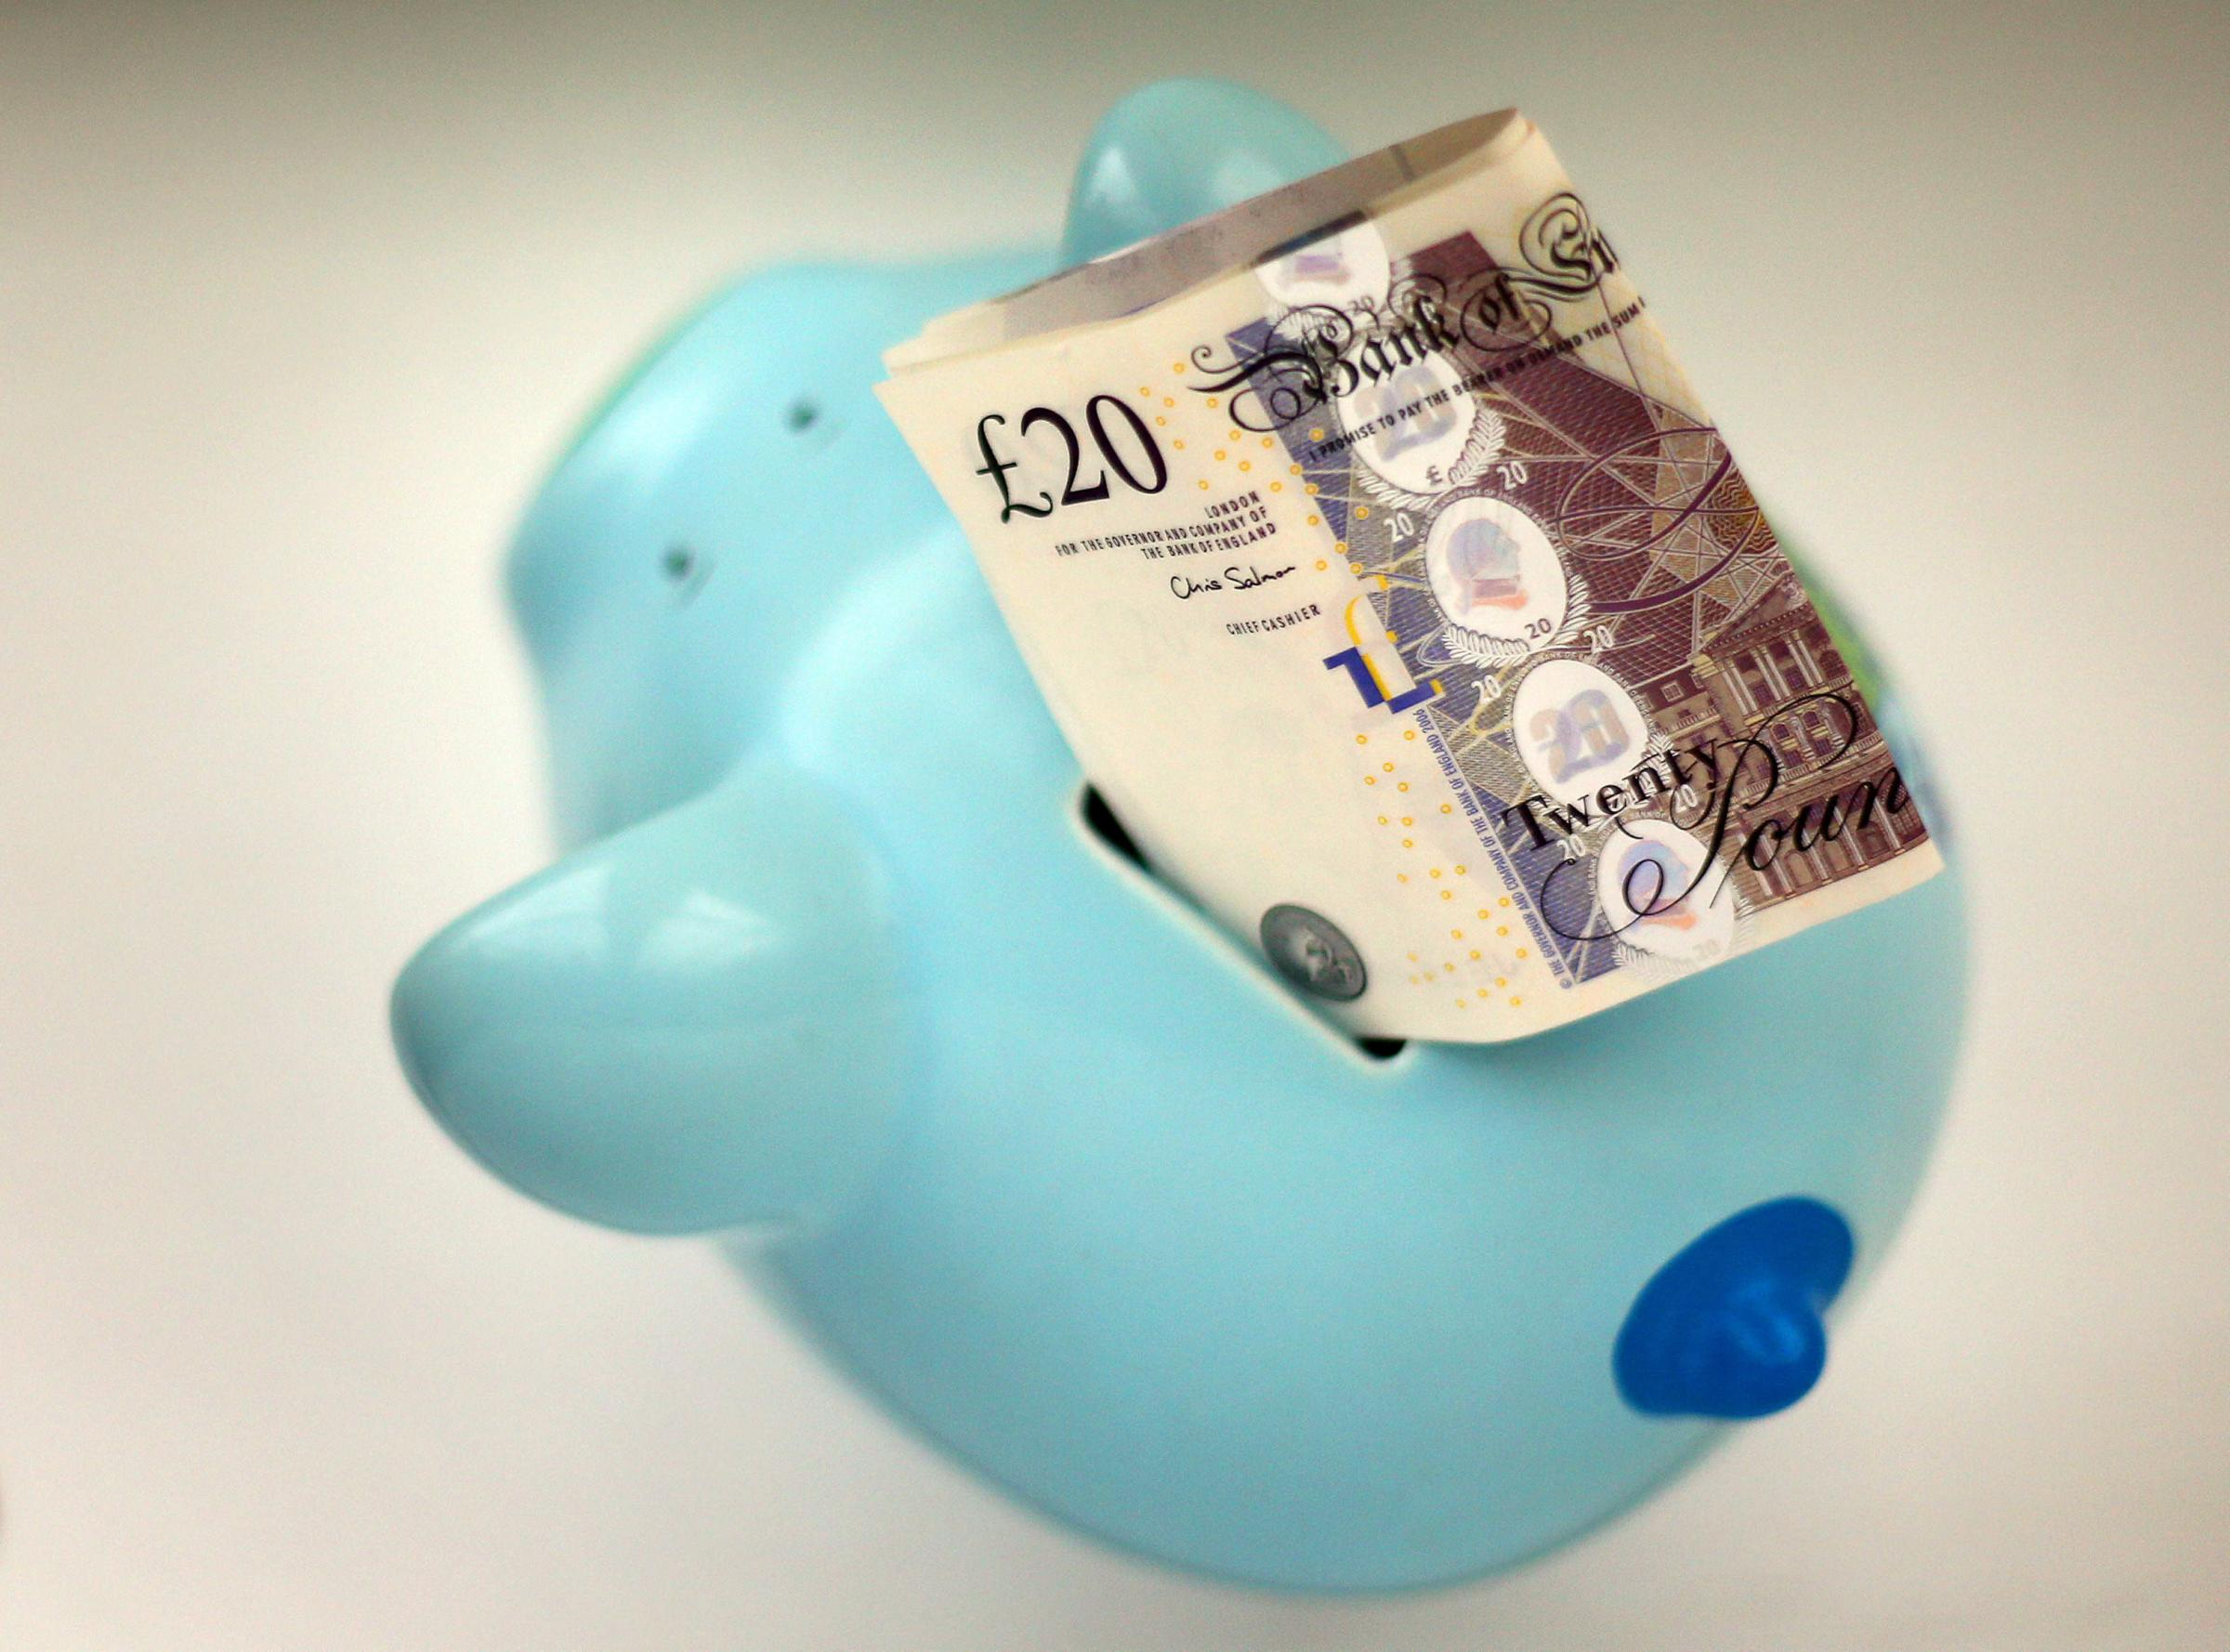 25-year-olds should get a £10,000 payment funded by inheritance tax, a think tank has suggested